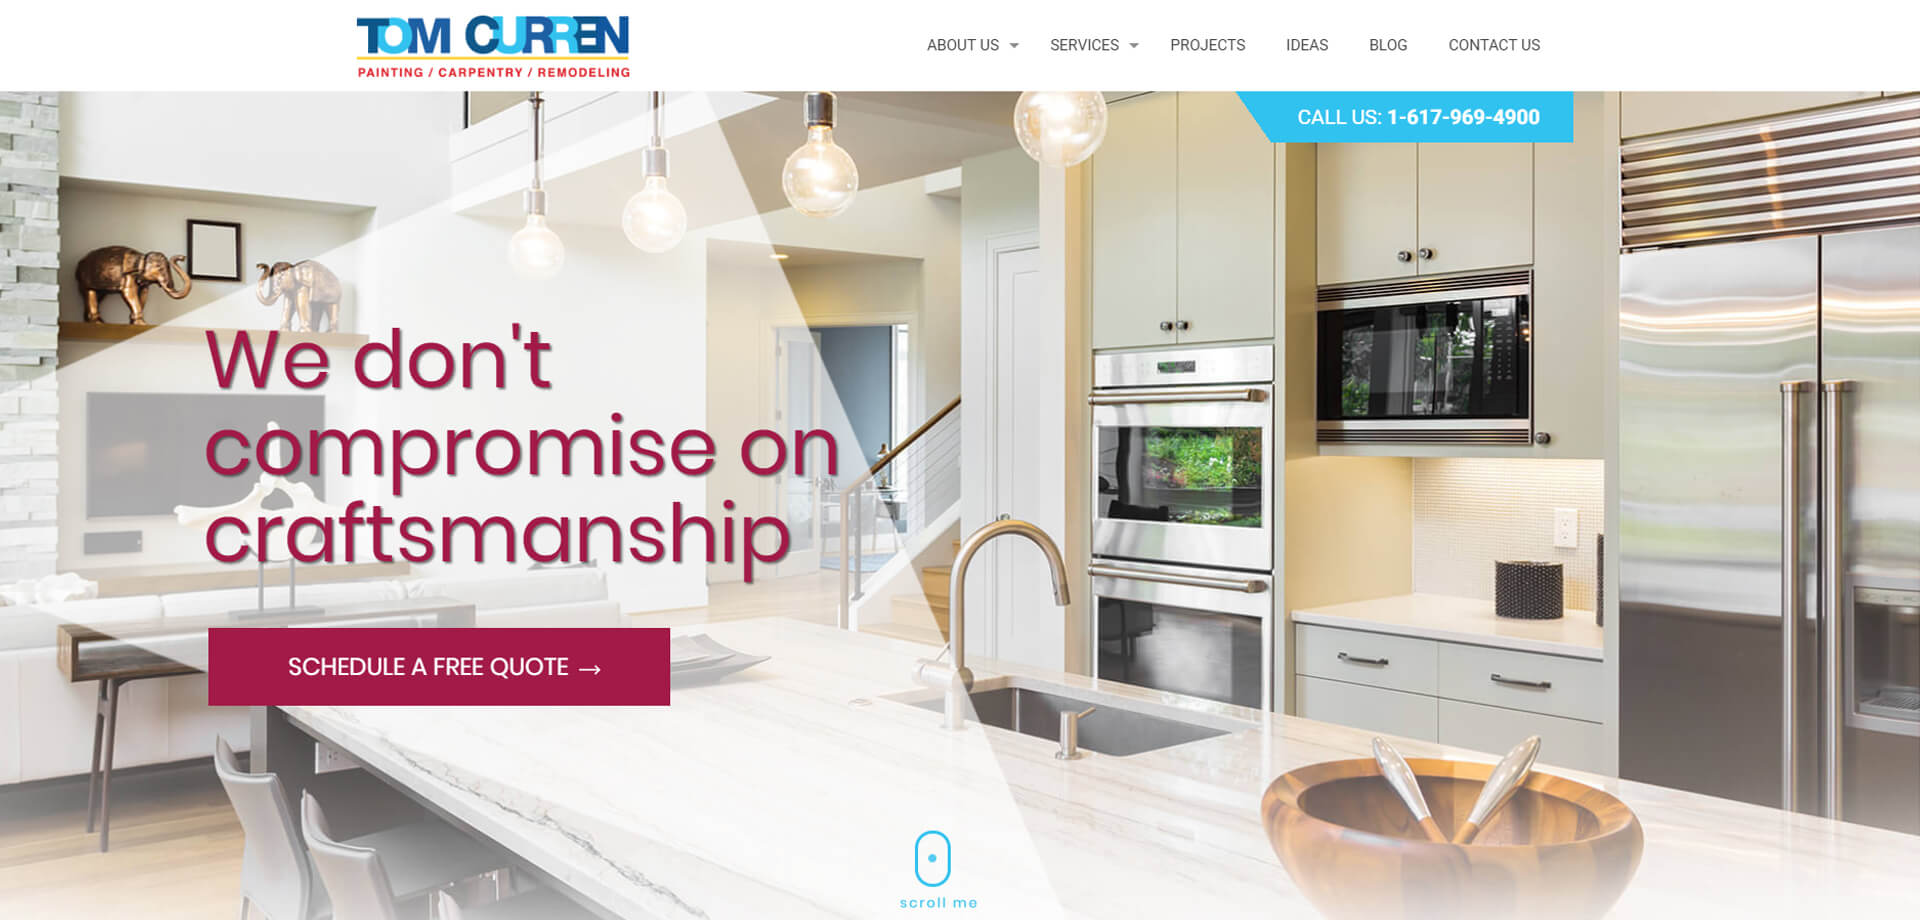 High-end property remodelling and refurbishing website